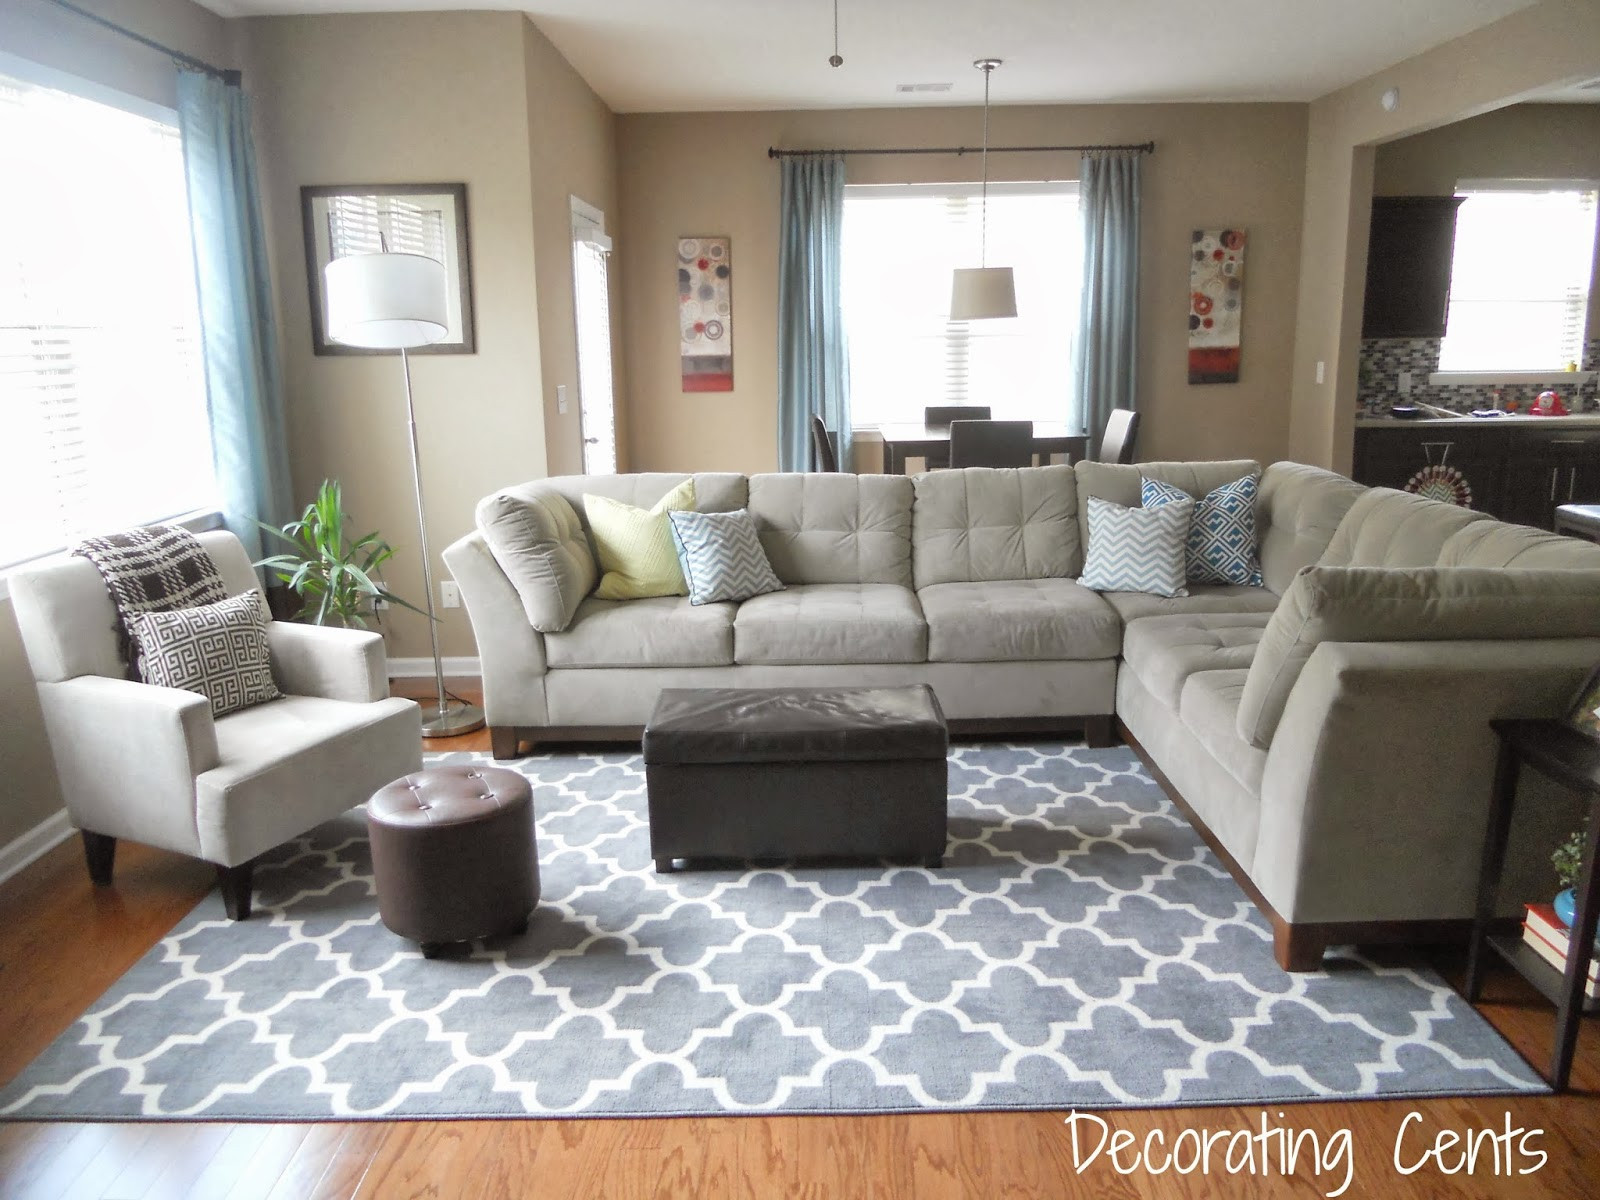 Best ideas about Family Room Rugs . Save or Pin Decorating Cents New Family Room Rug Now.